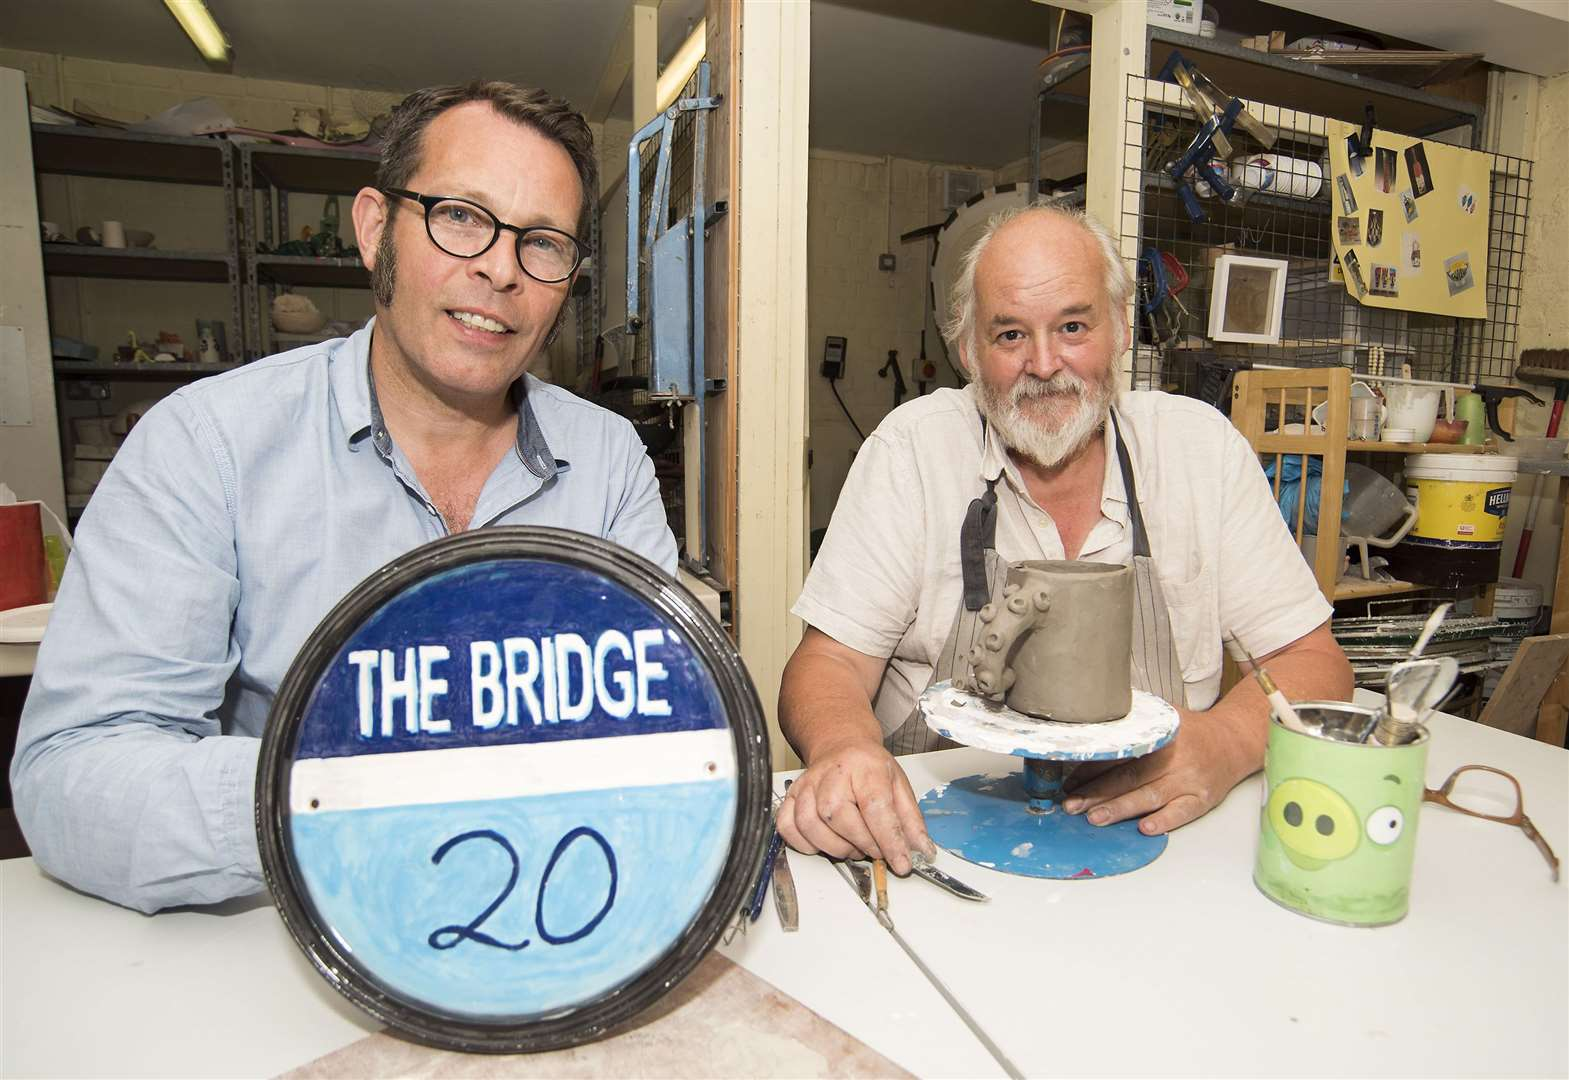 Bridge Project in Sudbury receives £10,000 grant to expand workshop offerings